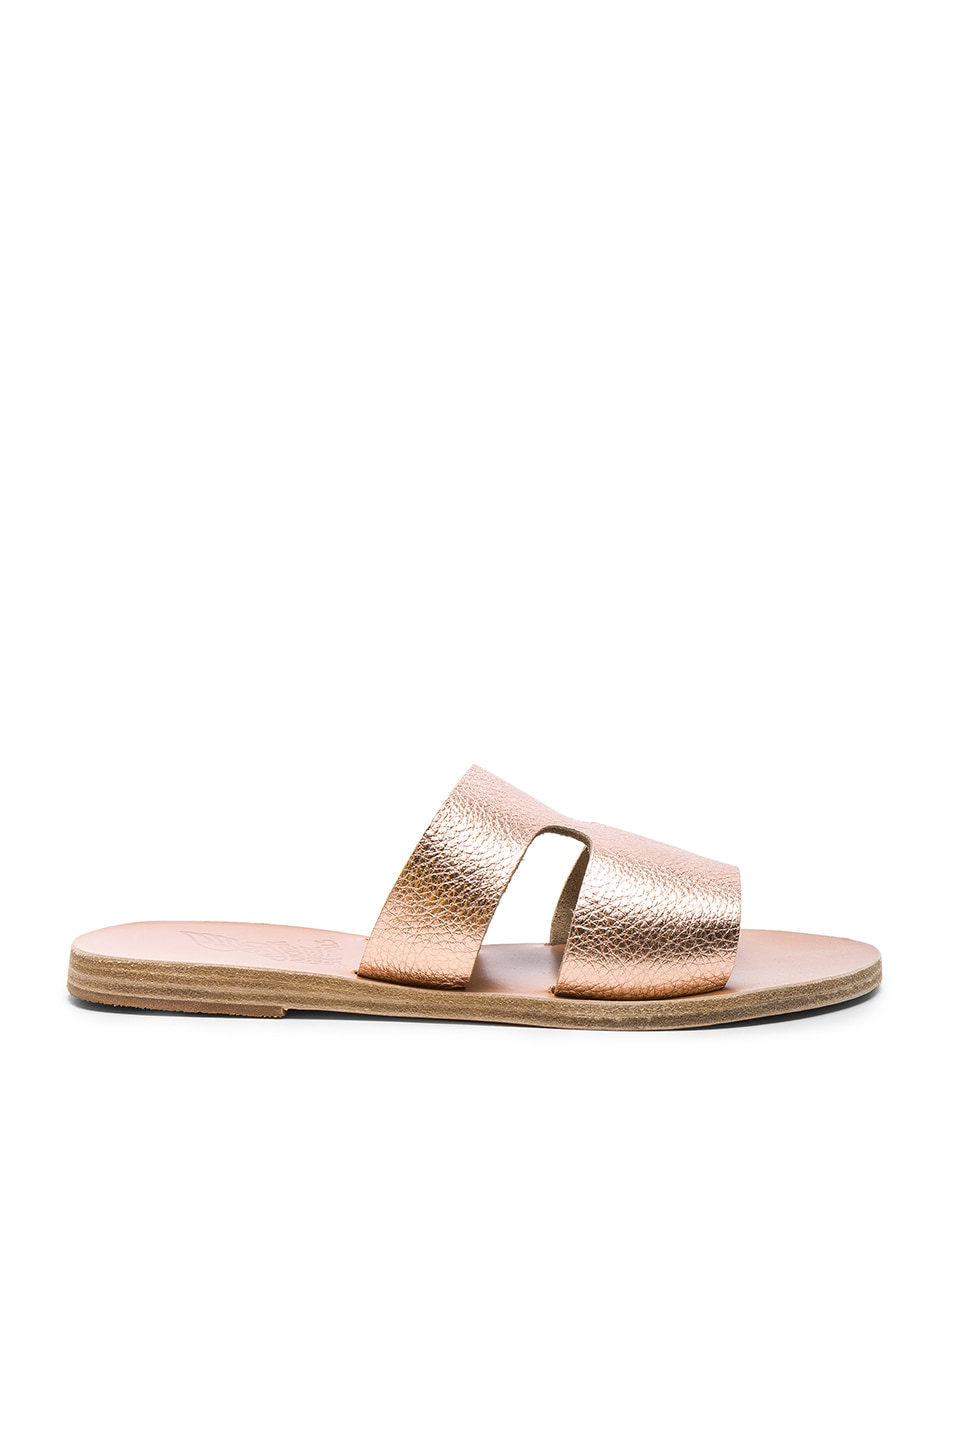 Image 1 of Ancient Greek Sandals Metallic Leather Apteros Sandals in Pink Metallic